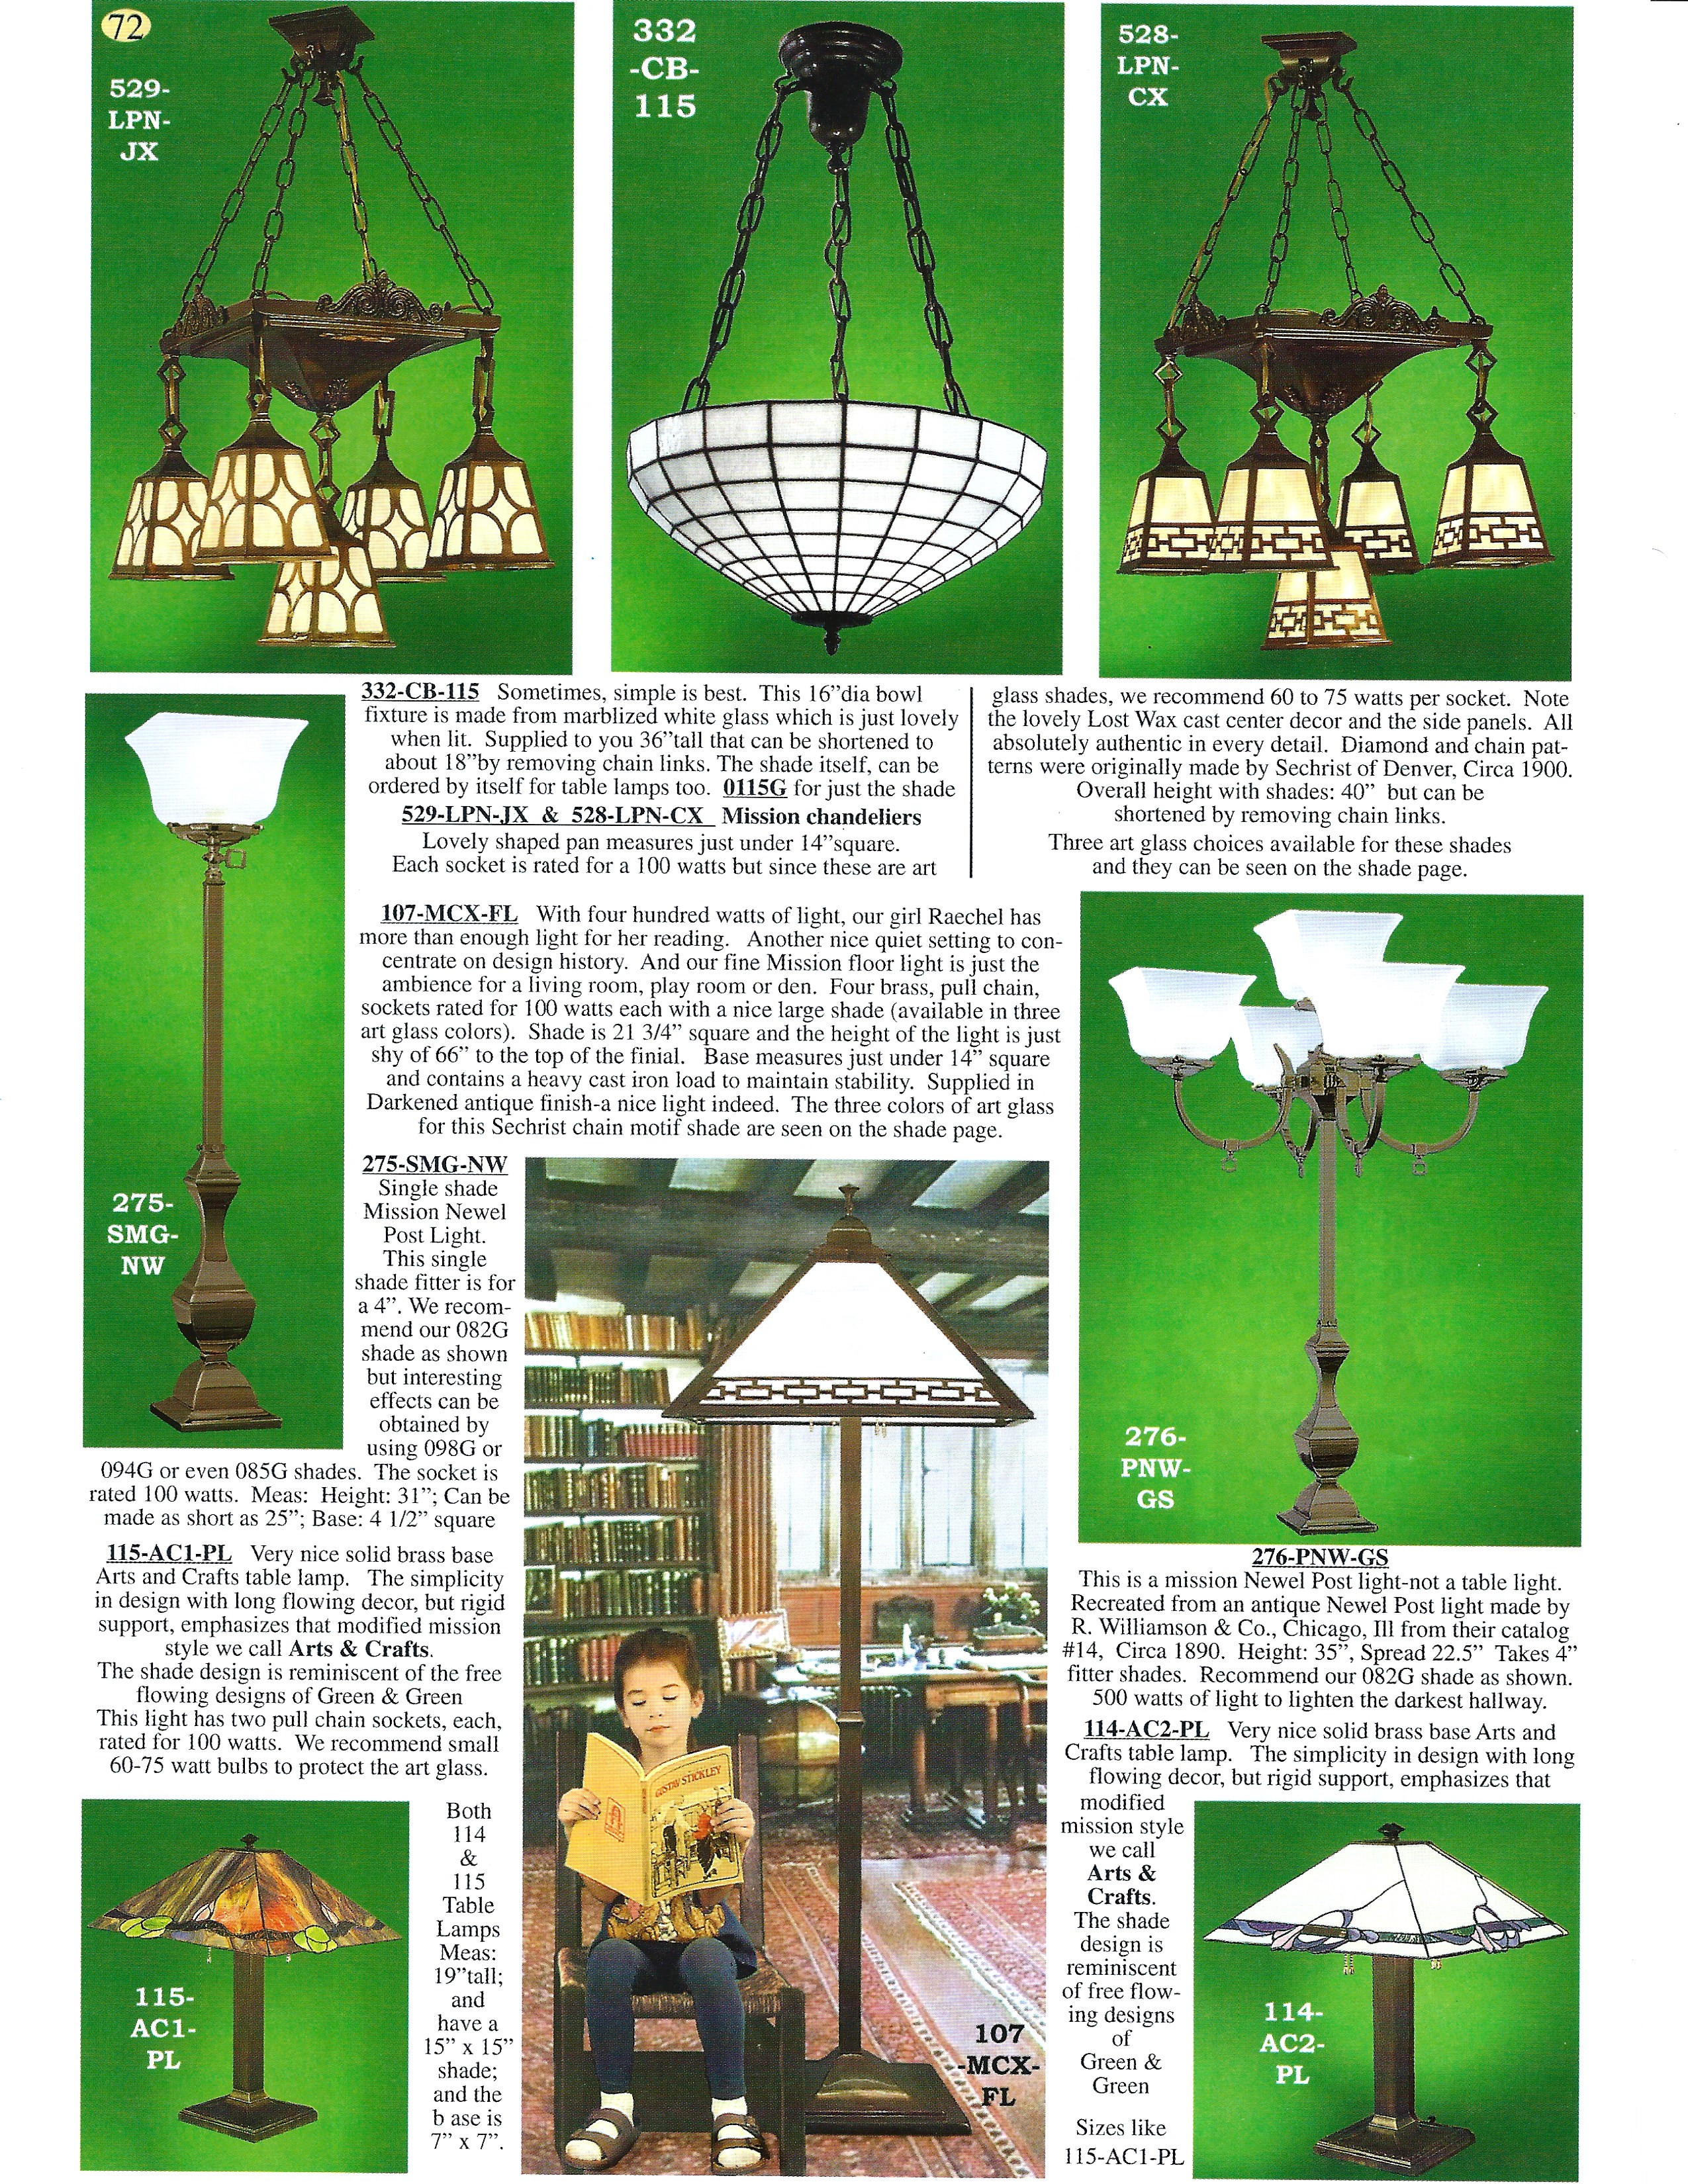 Catalog page 98